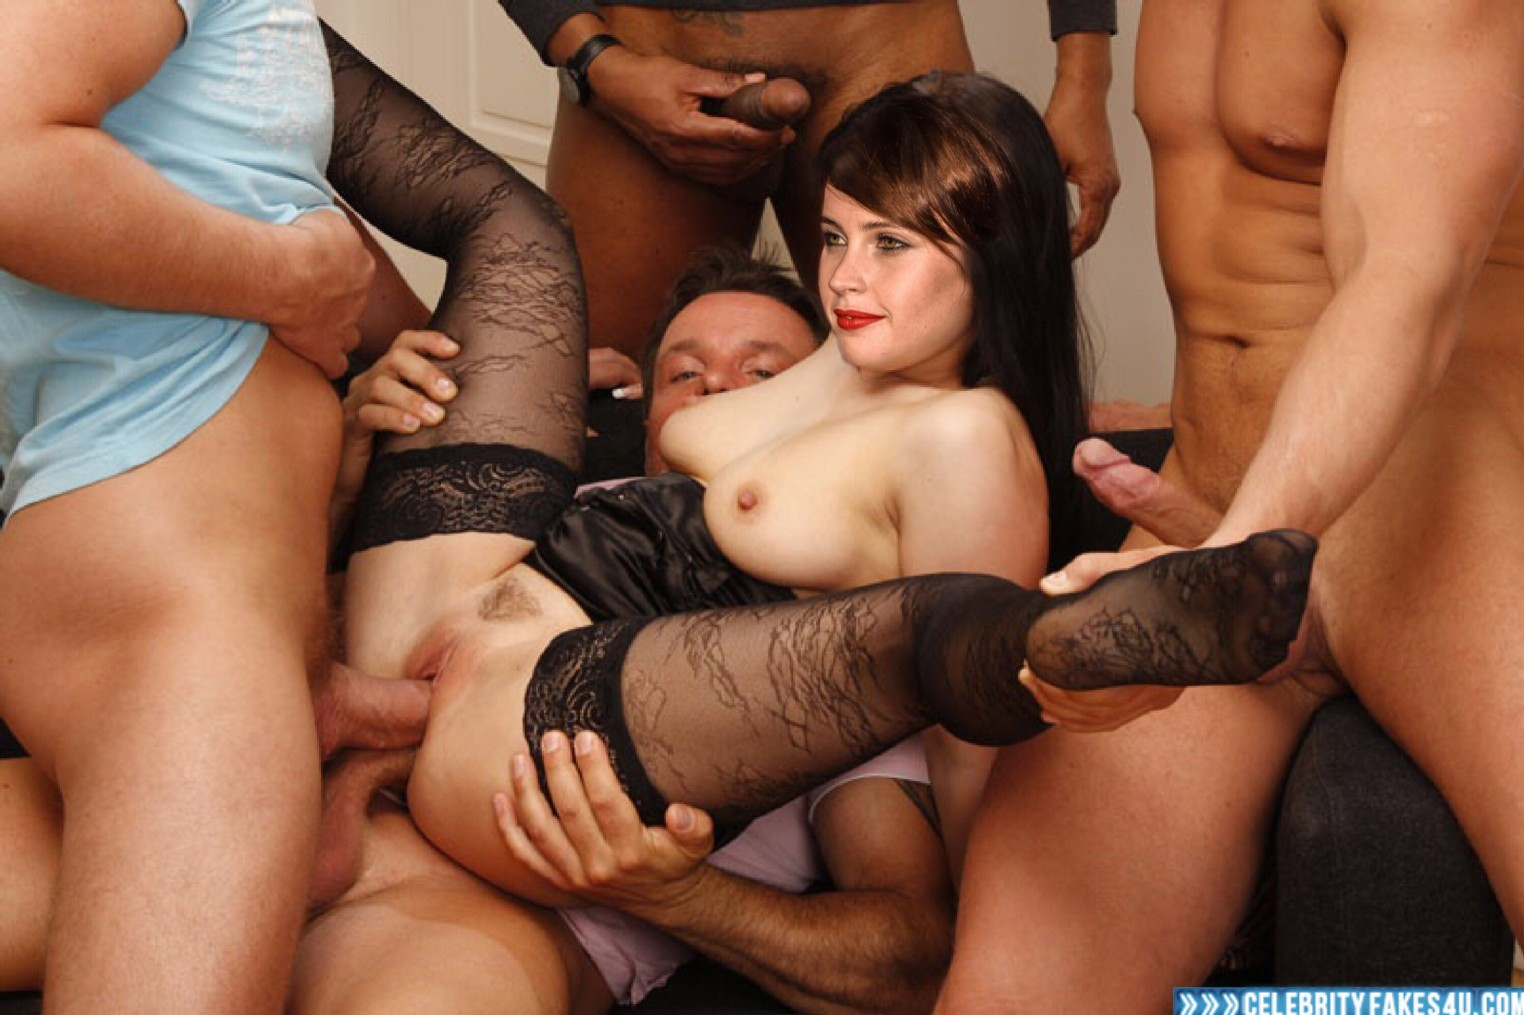 Free porn gang bang movie, butt ass porn houseshoes